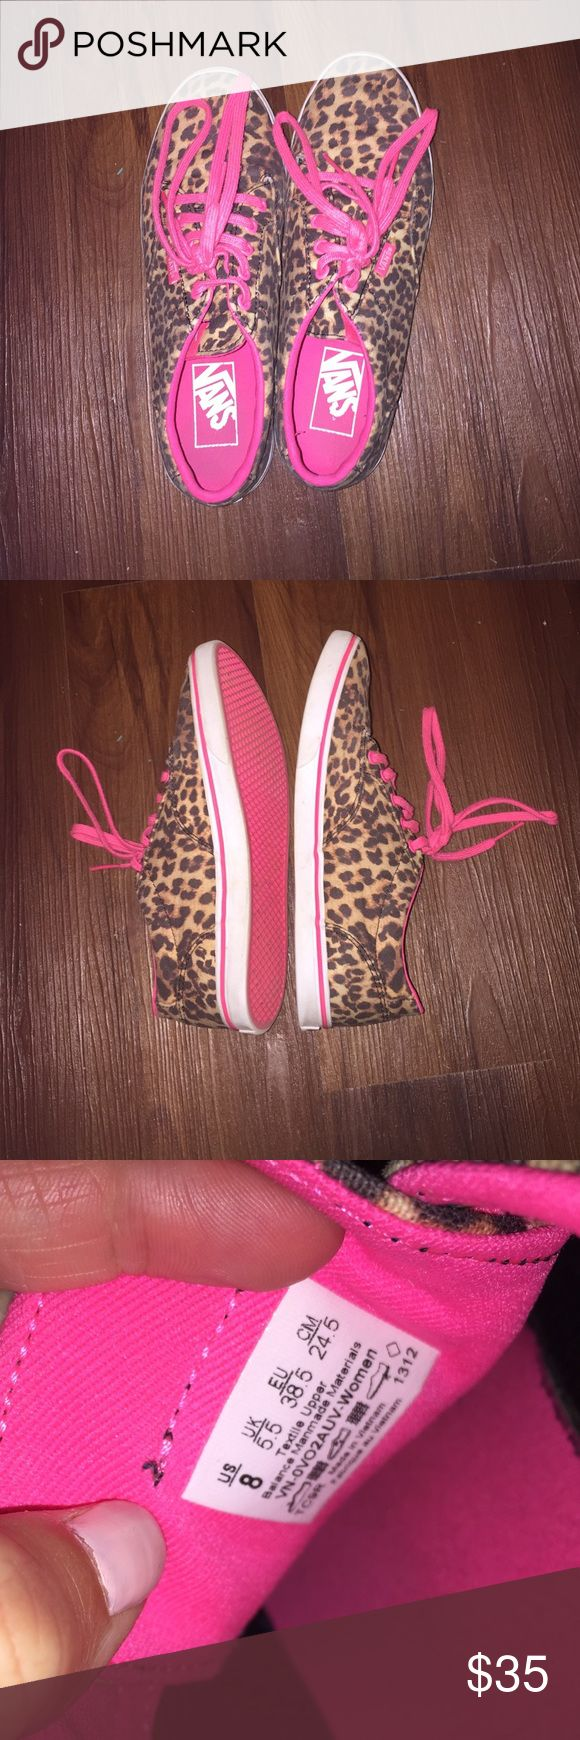 Leopard Print Vans Lightly worn leopard printed Vans. Very cute and comfy, just don't wear as much anymore. Offers welcome! Vans Shoes Sneakers